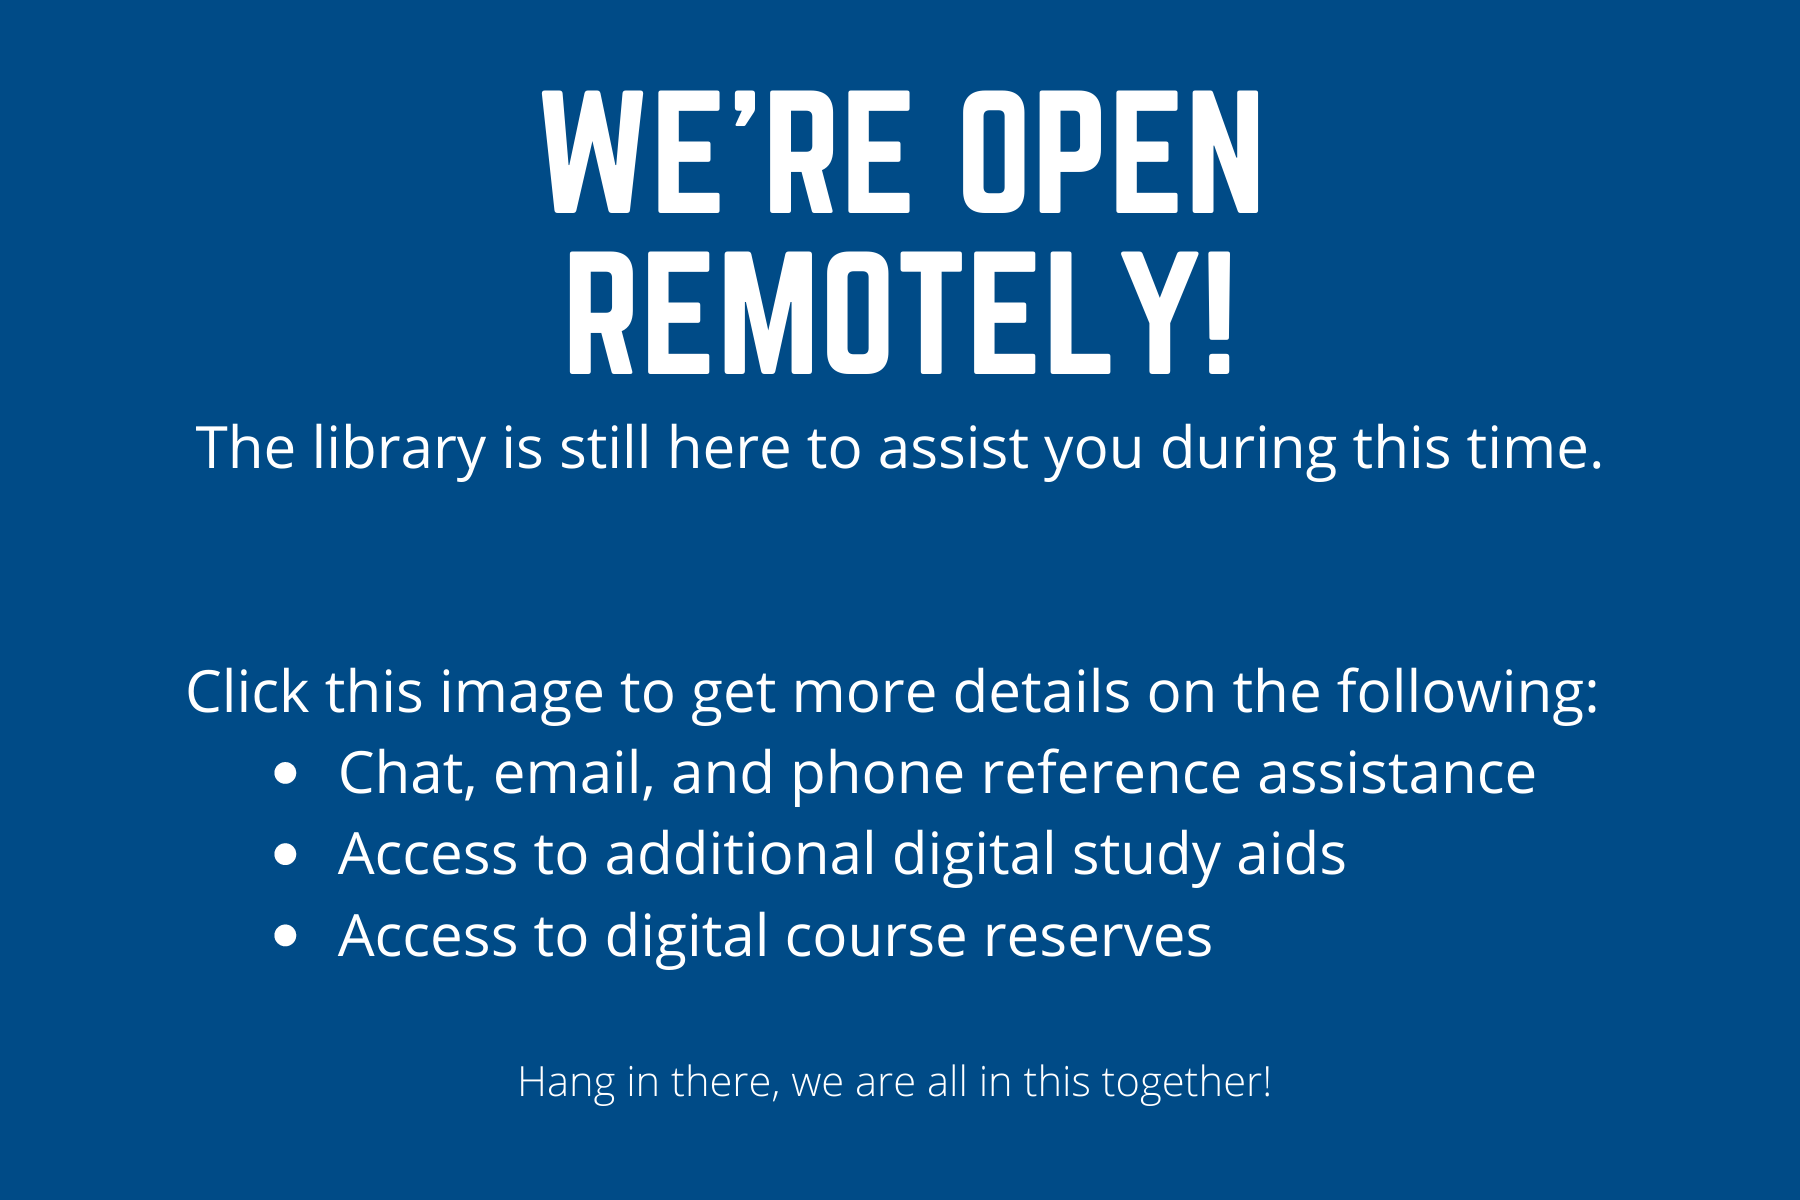 We're Open Remotely. Click here for details!